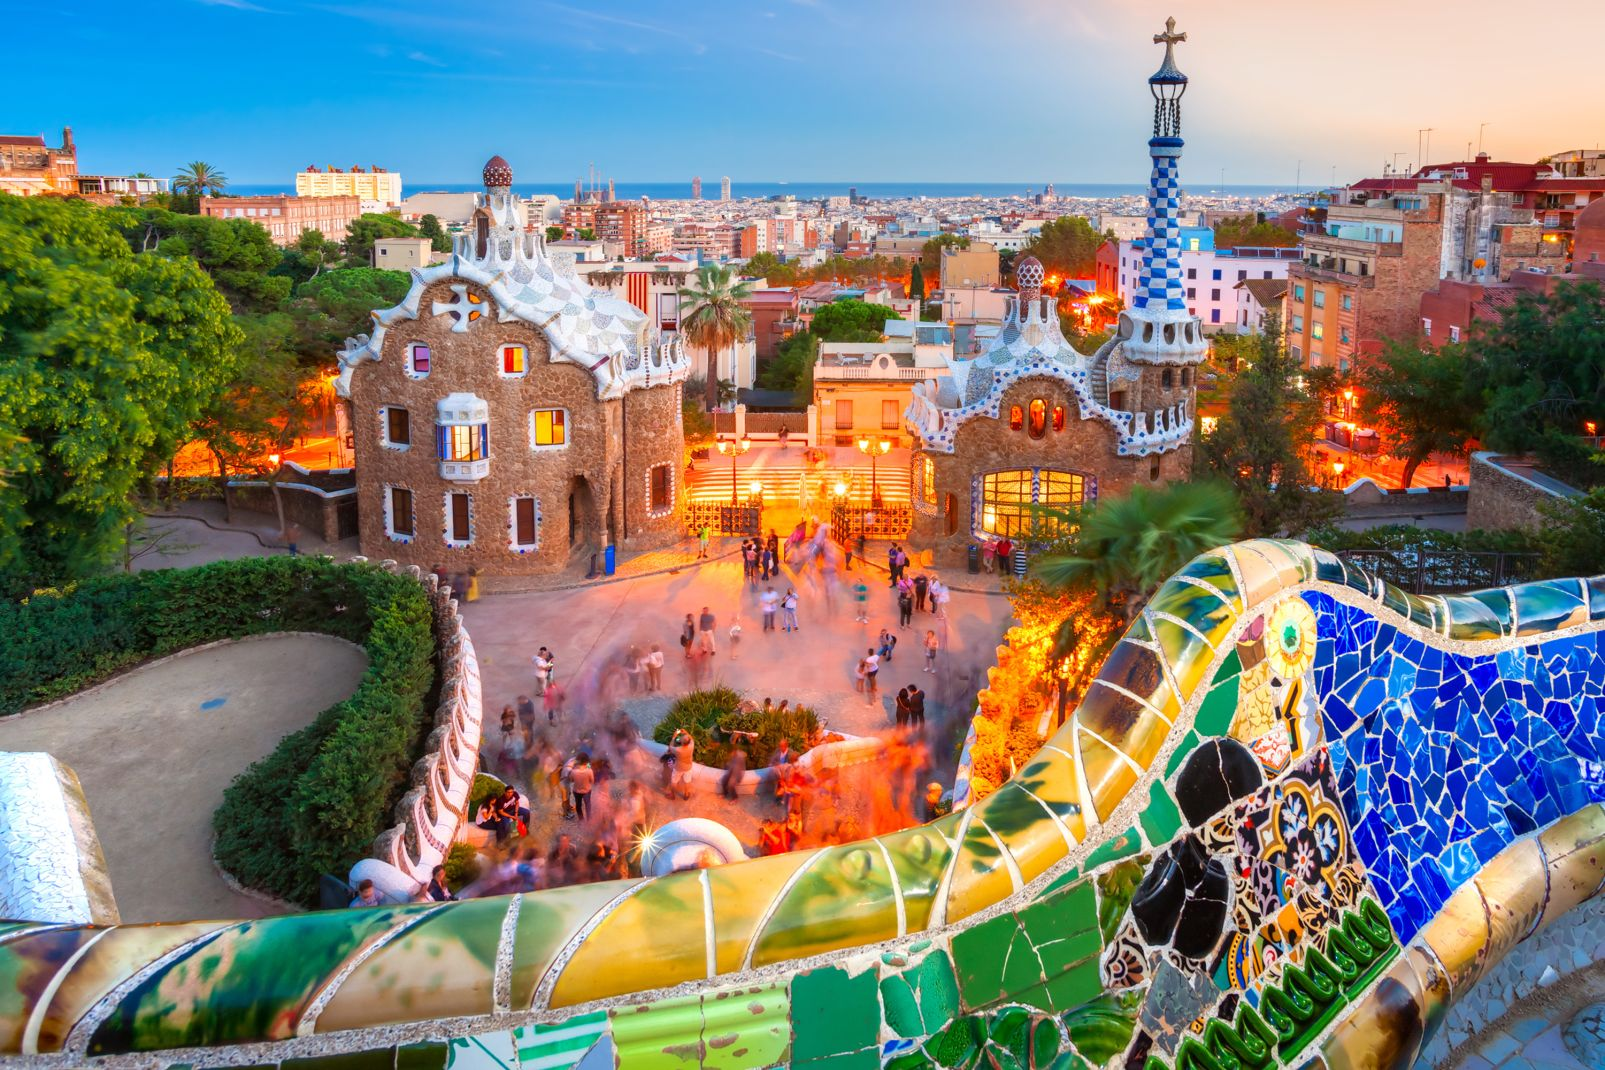 Catalogne, espagne, Barcelone, europe, gaudi, parc, guell